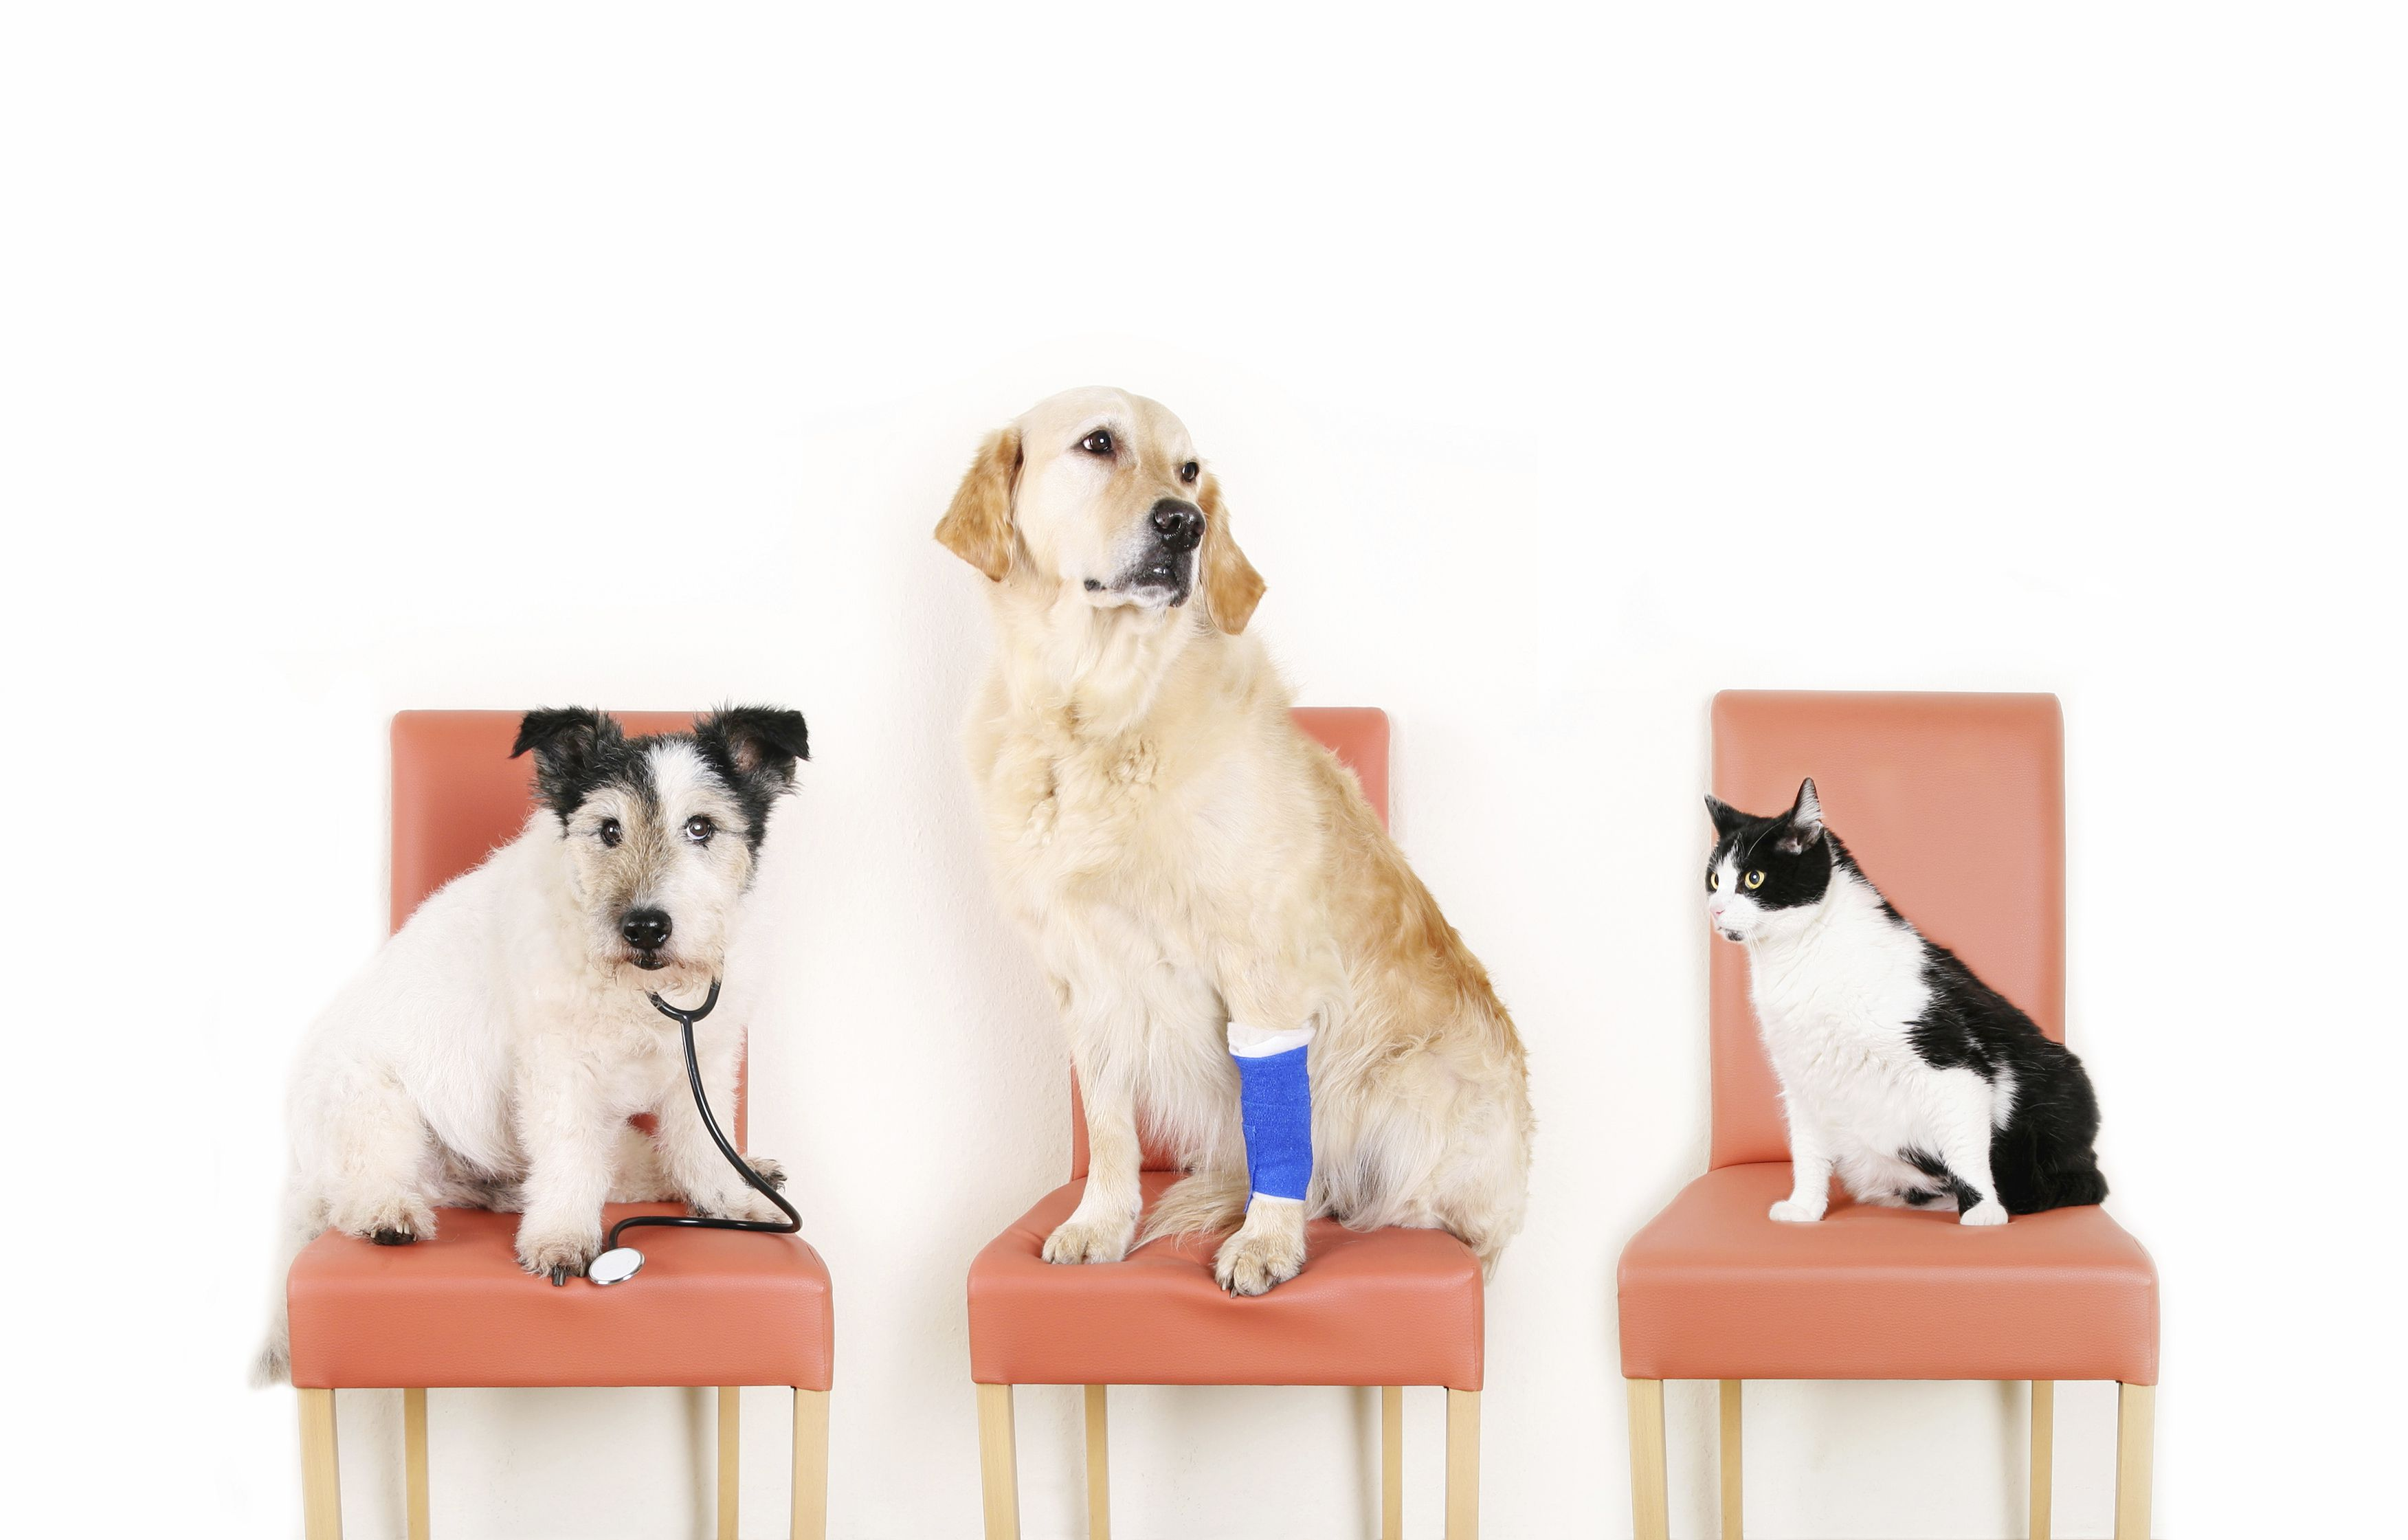 Furosemide For Dogs With Food